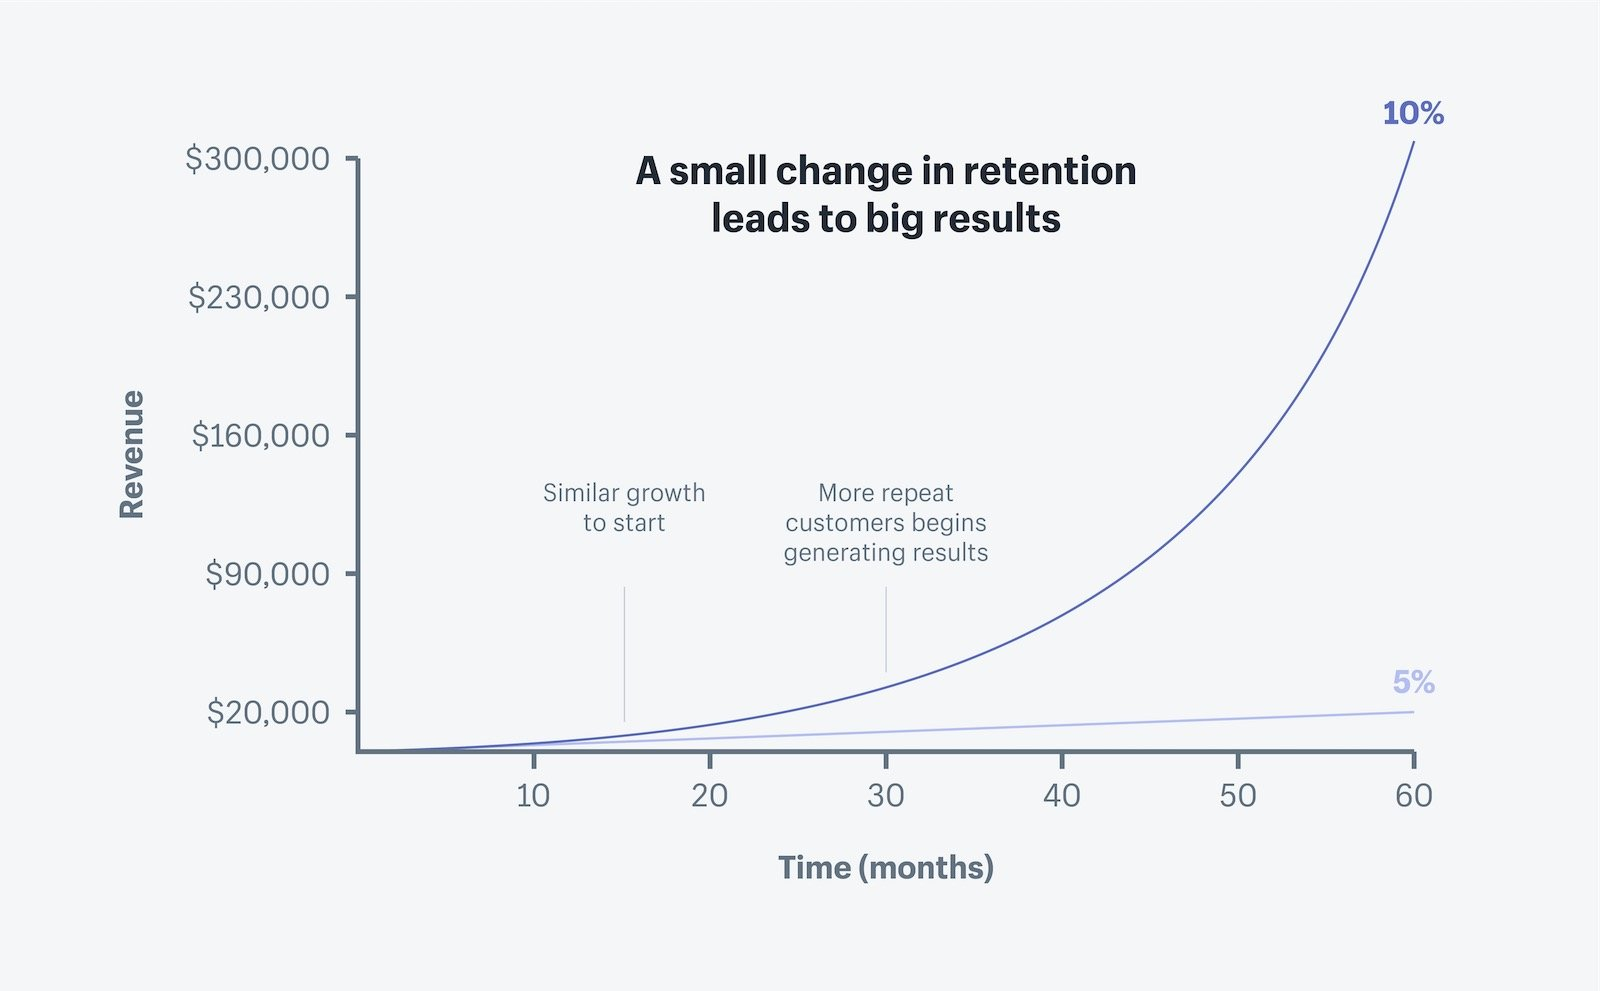 Customer retention rate over time